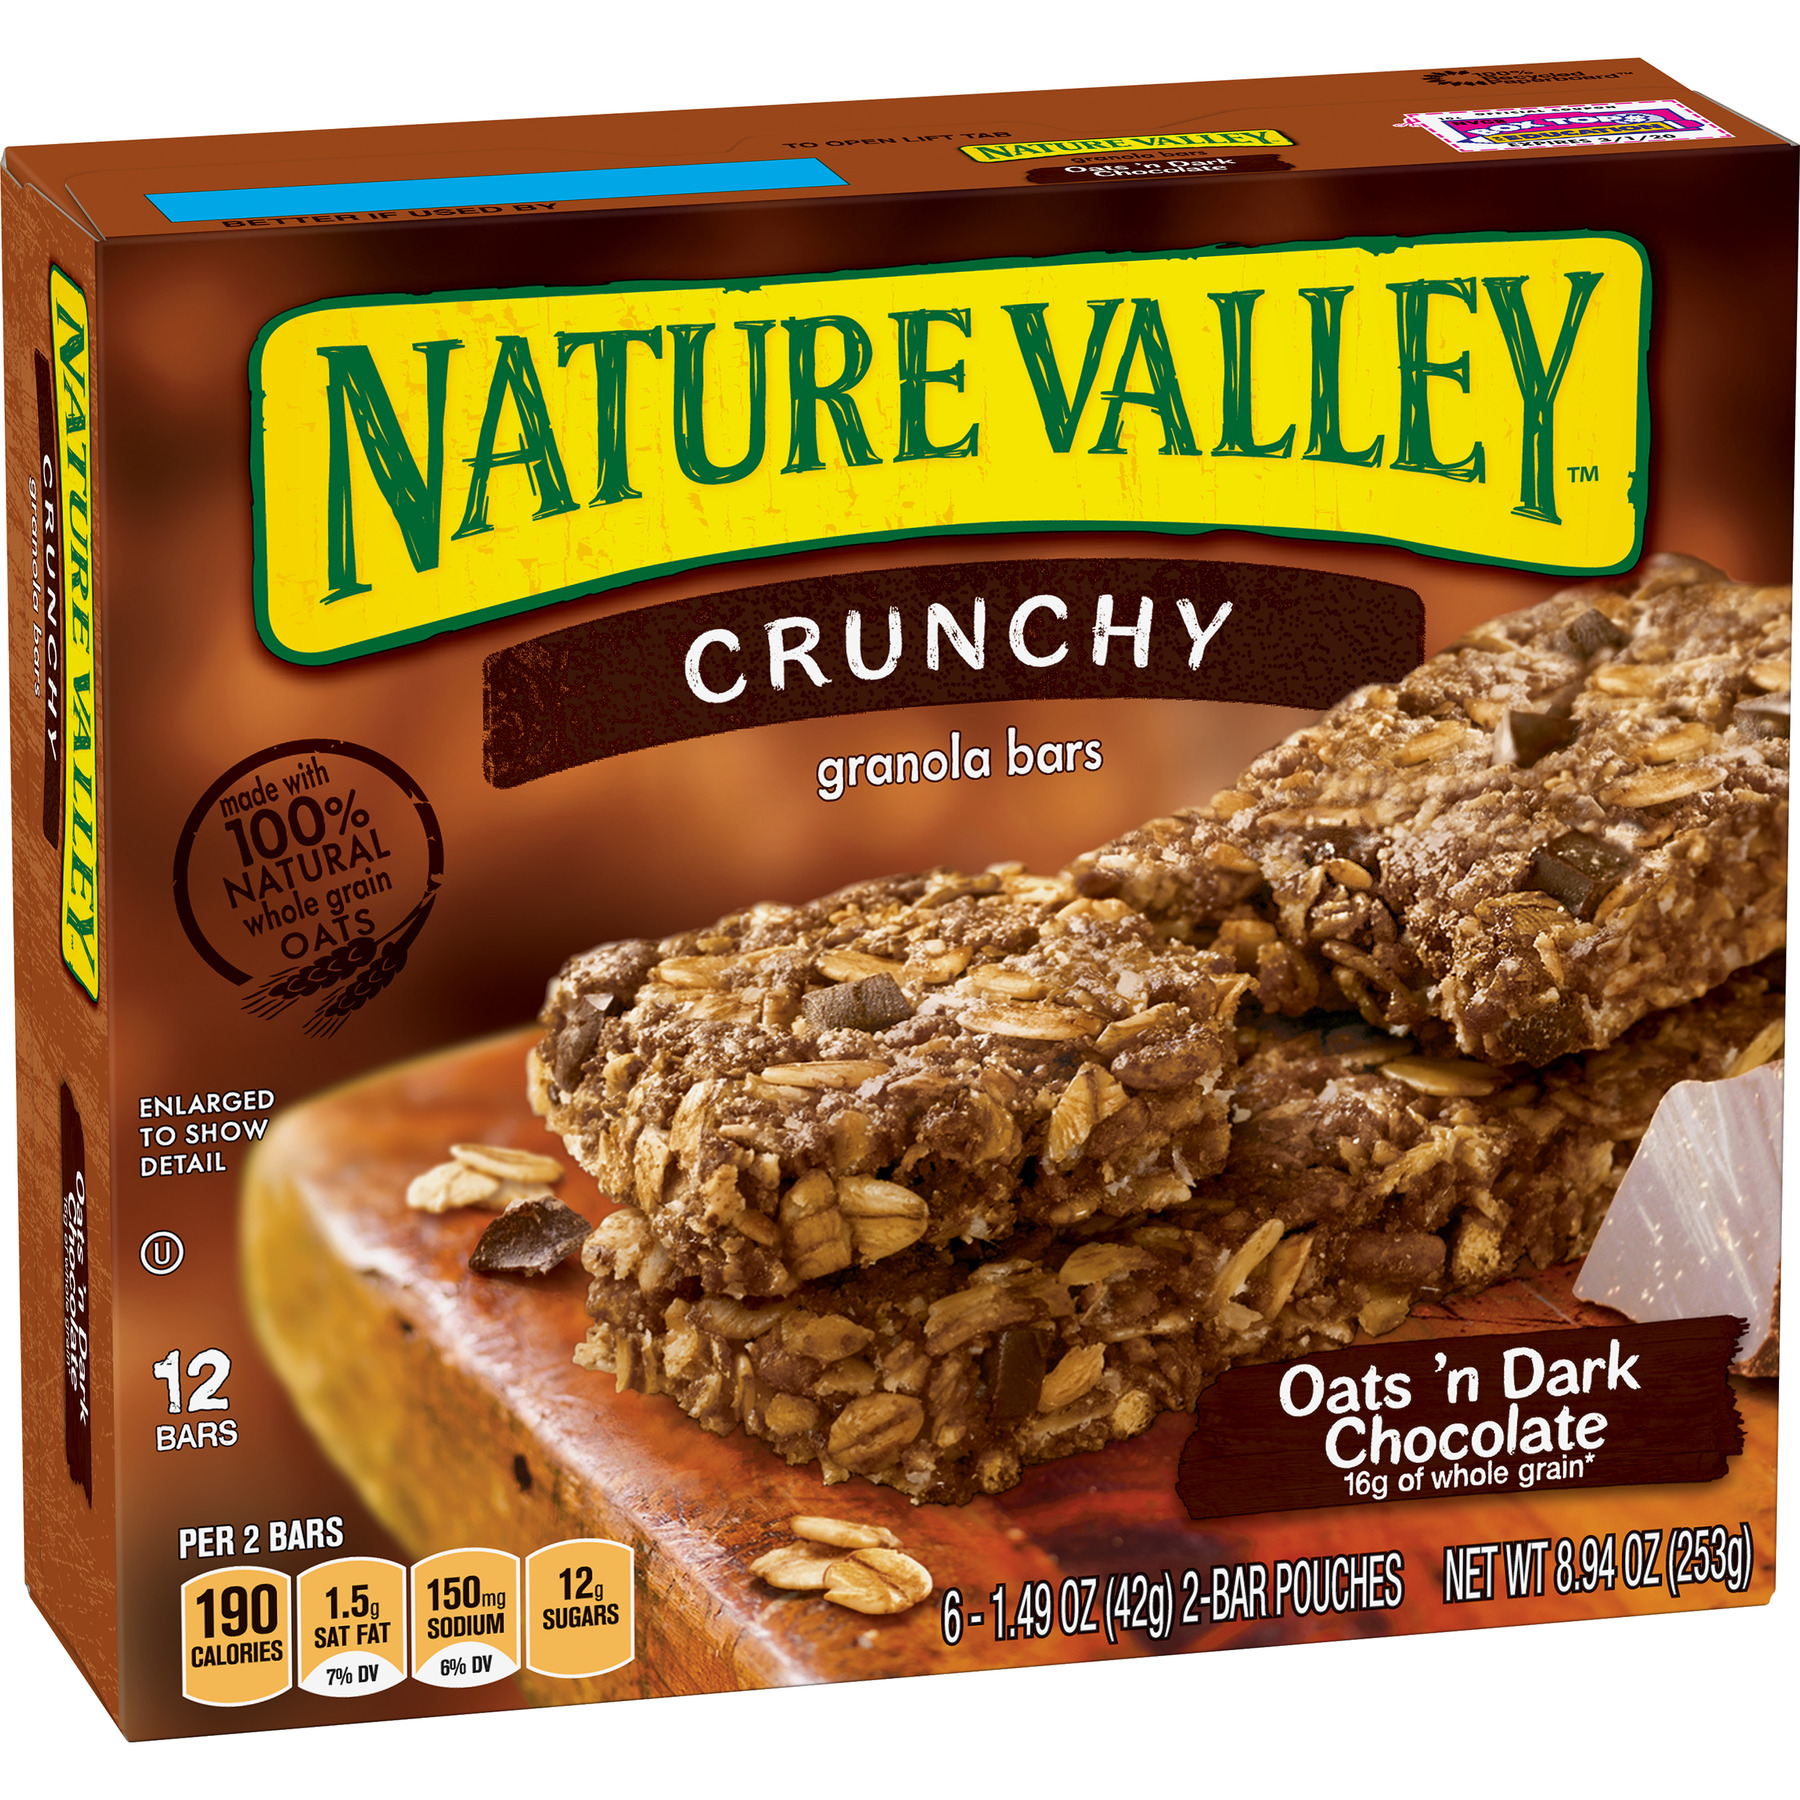 Nature Valley Granola Bars Crunchy Oats & Dark Choc (Total 12 Bars